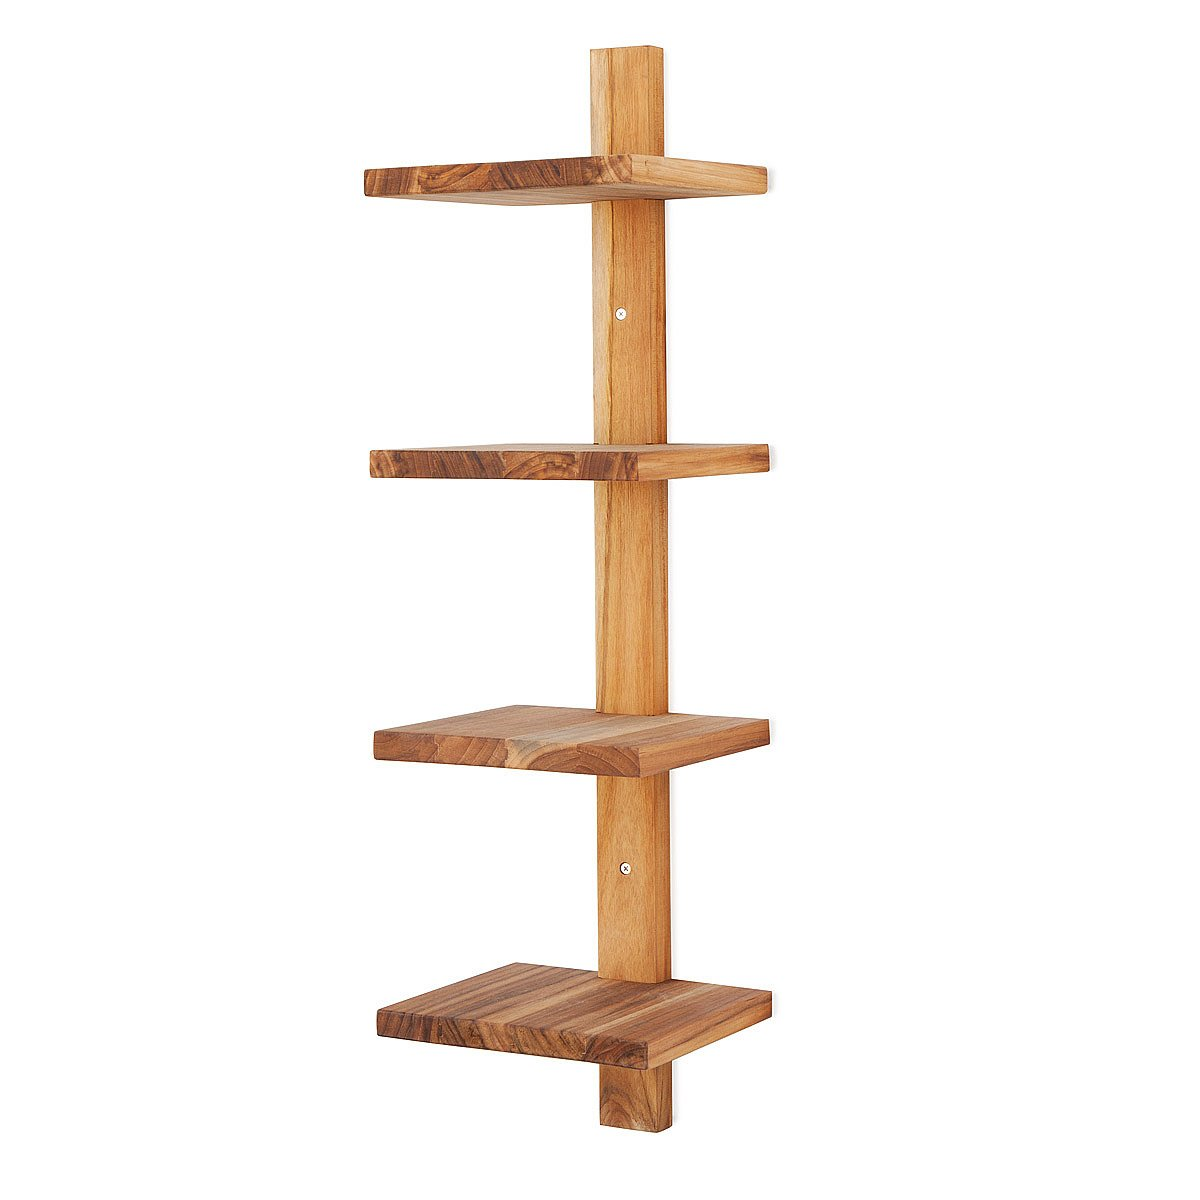 Minimalist teak wall shelf vertical shelves stacked shelves minimalist teak wall shelf 2 thumbnail amipublicfo Gallery